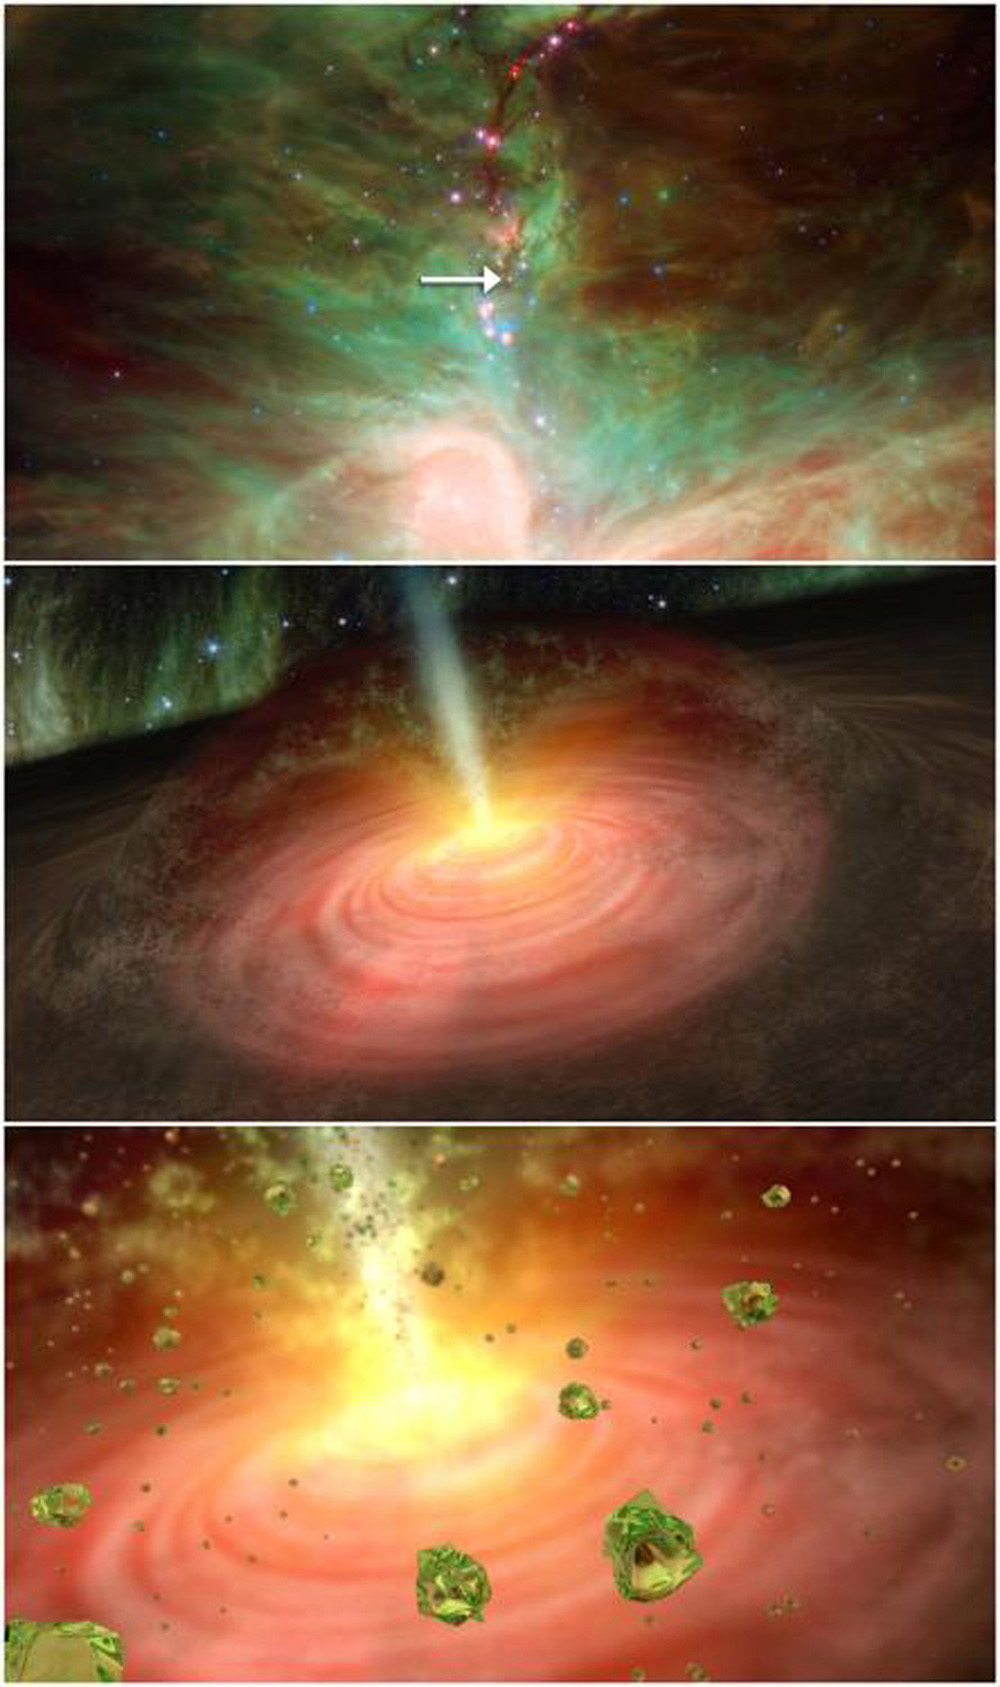 This graphic illustrates a stellar fountain of crystal rain, beginning with a NASA Spitzer picture of the star in question, and ending with an artist's concept of what the crystal 'rain' might look like.